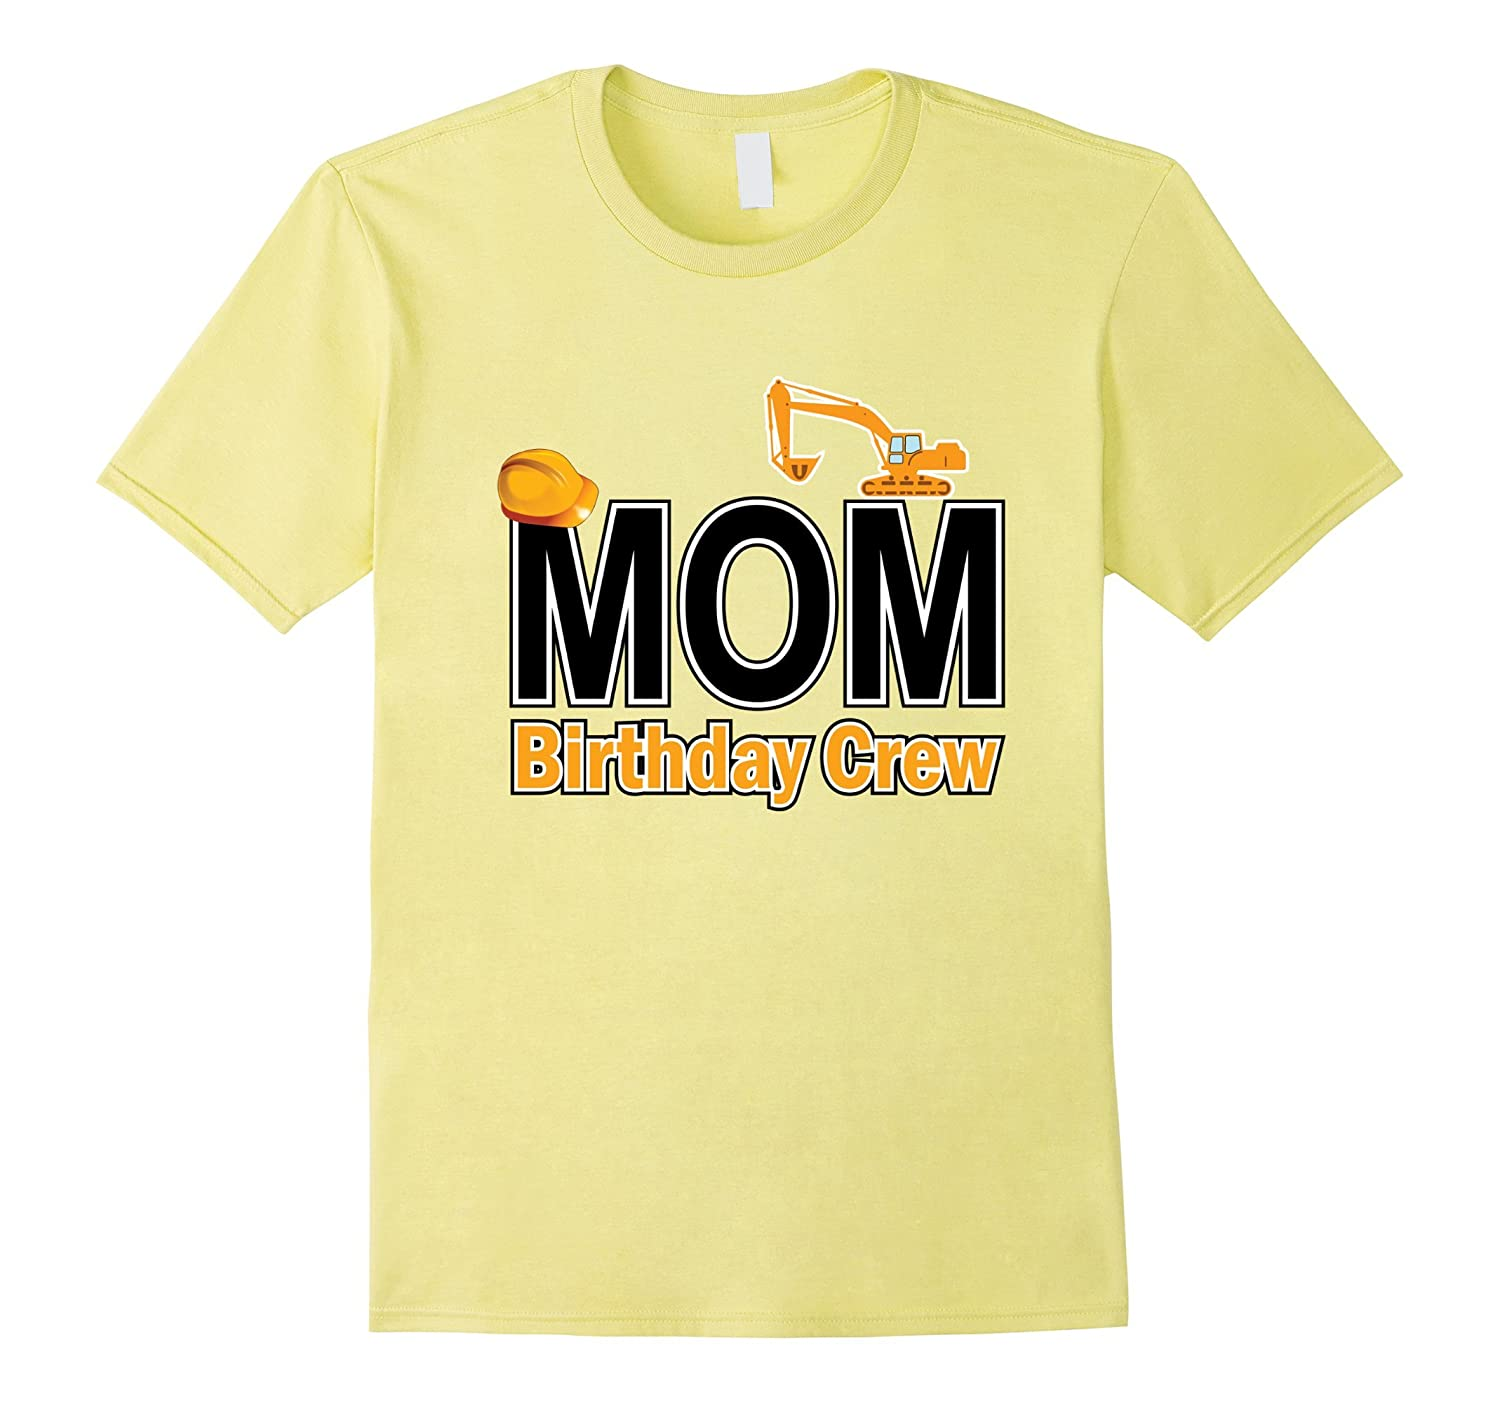 Mom Birthday Crew Shirts For Construction Party TH